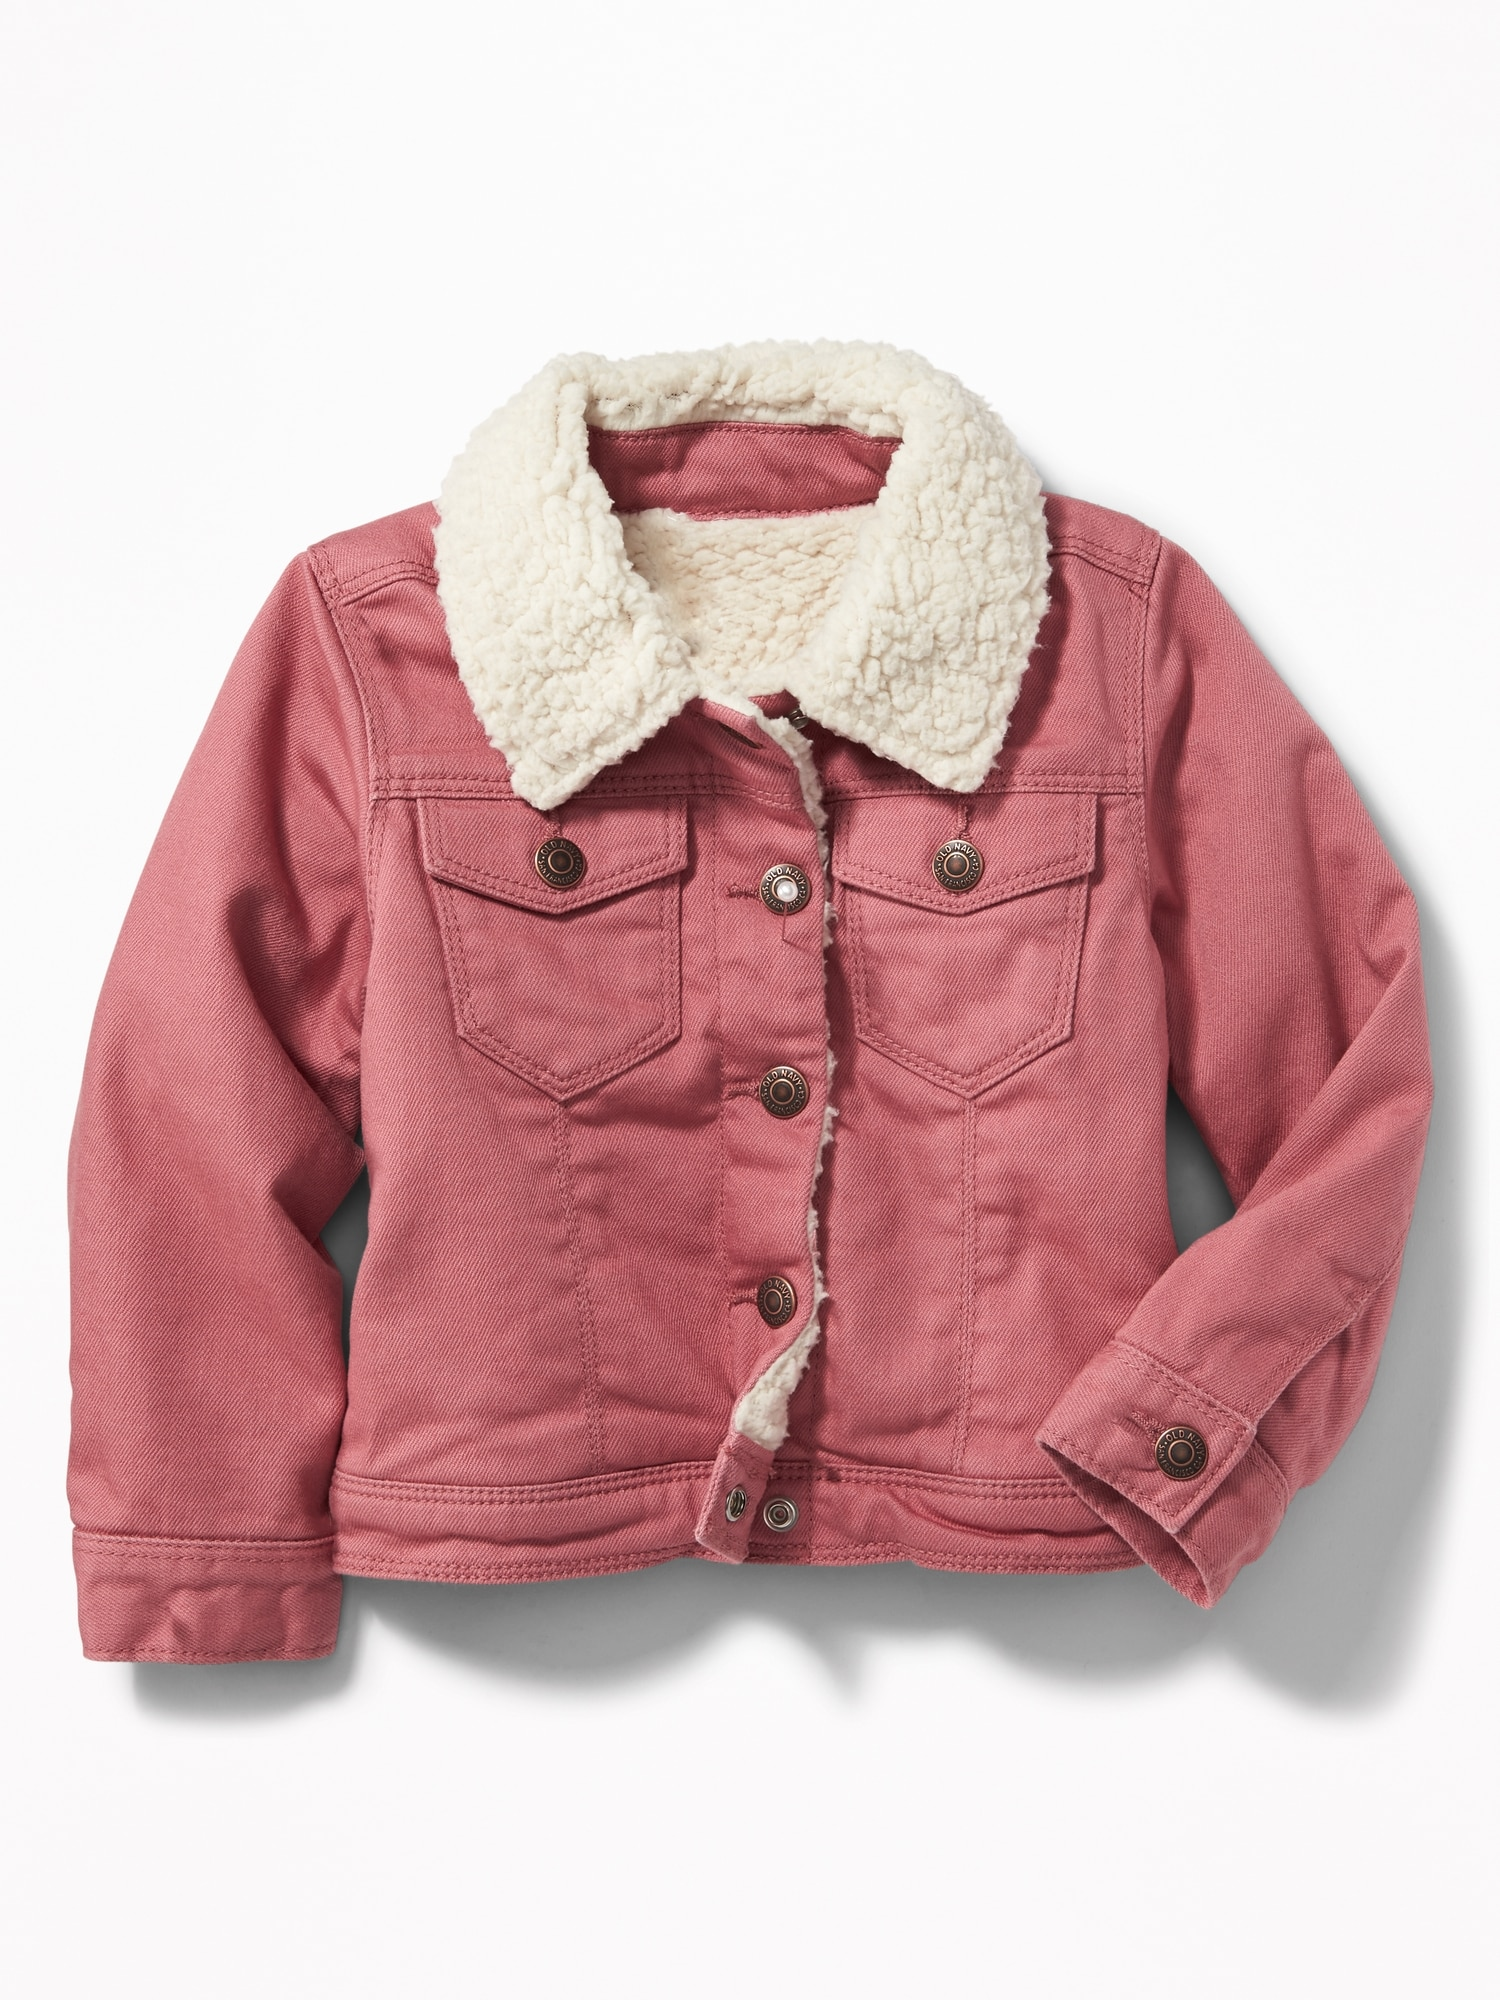 Sherpa-Lined Pink Trucker Jacket for Toddler Girls | Old Navy